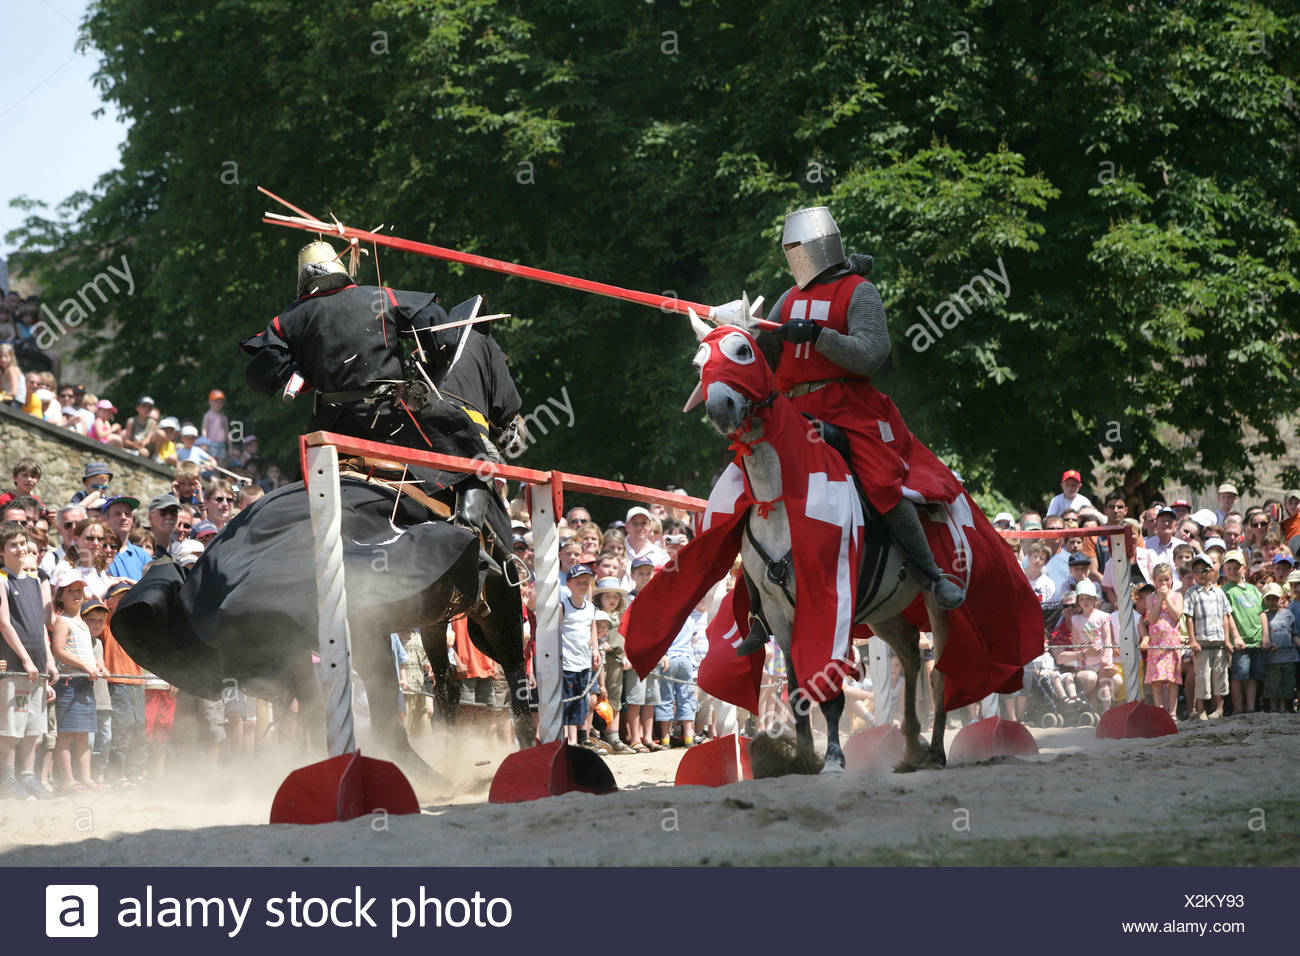 Two knights on horses are fighting with lances at a show on the fortress Ehrenbreitstein near Koblenz, Rhineland-Palatinate - Stock Image